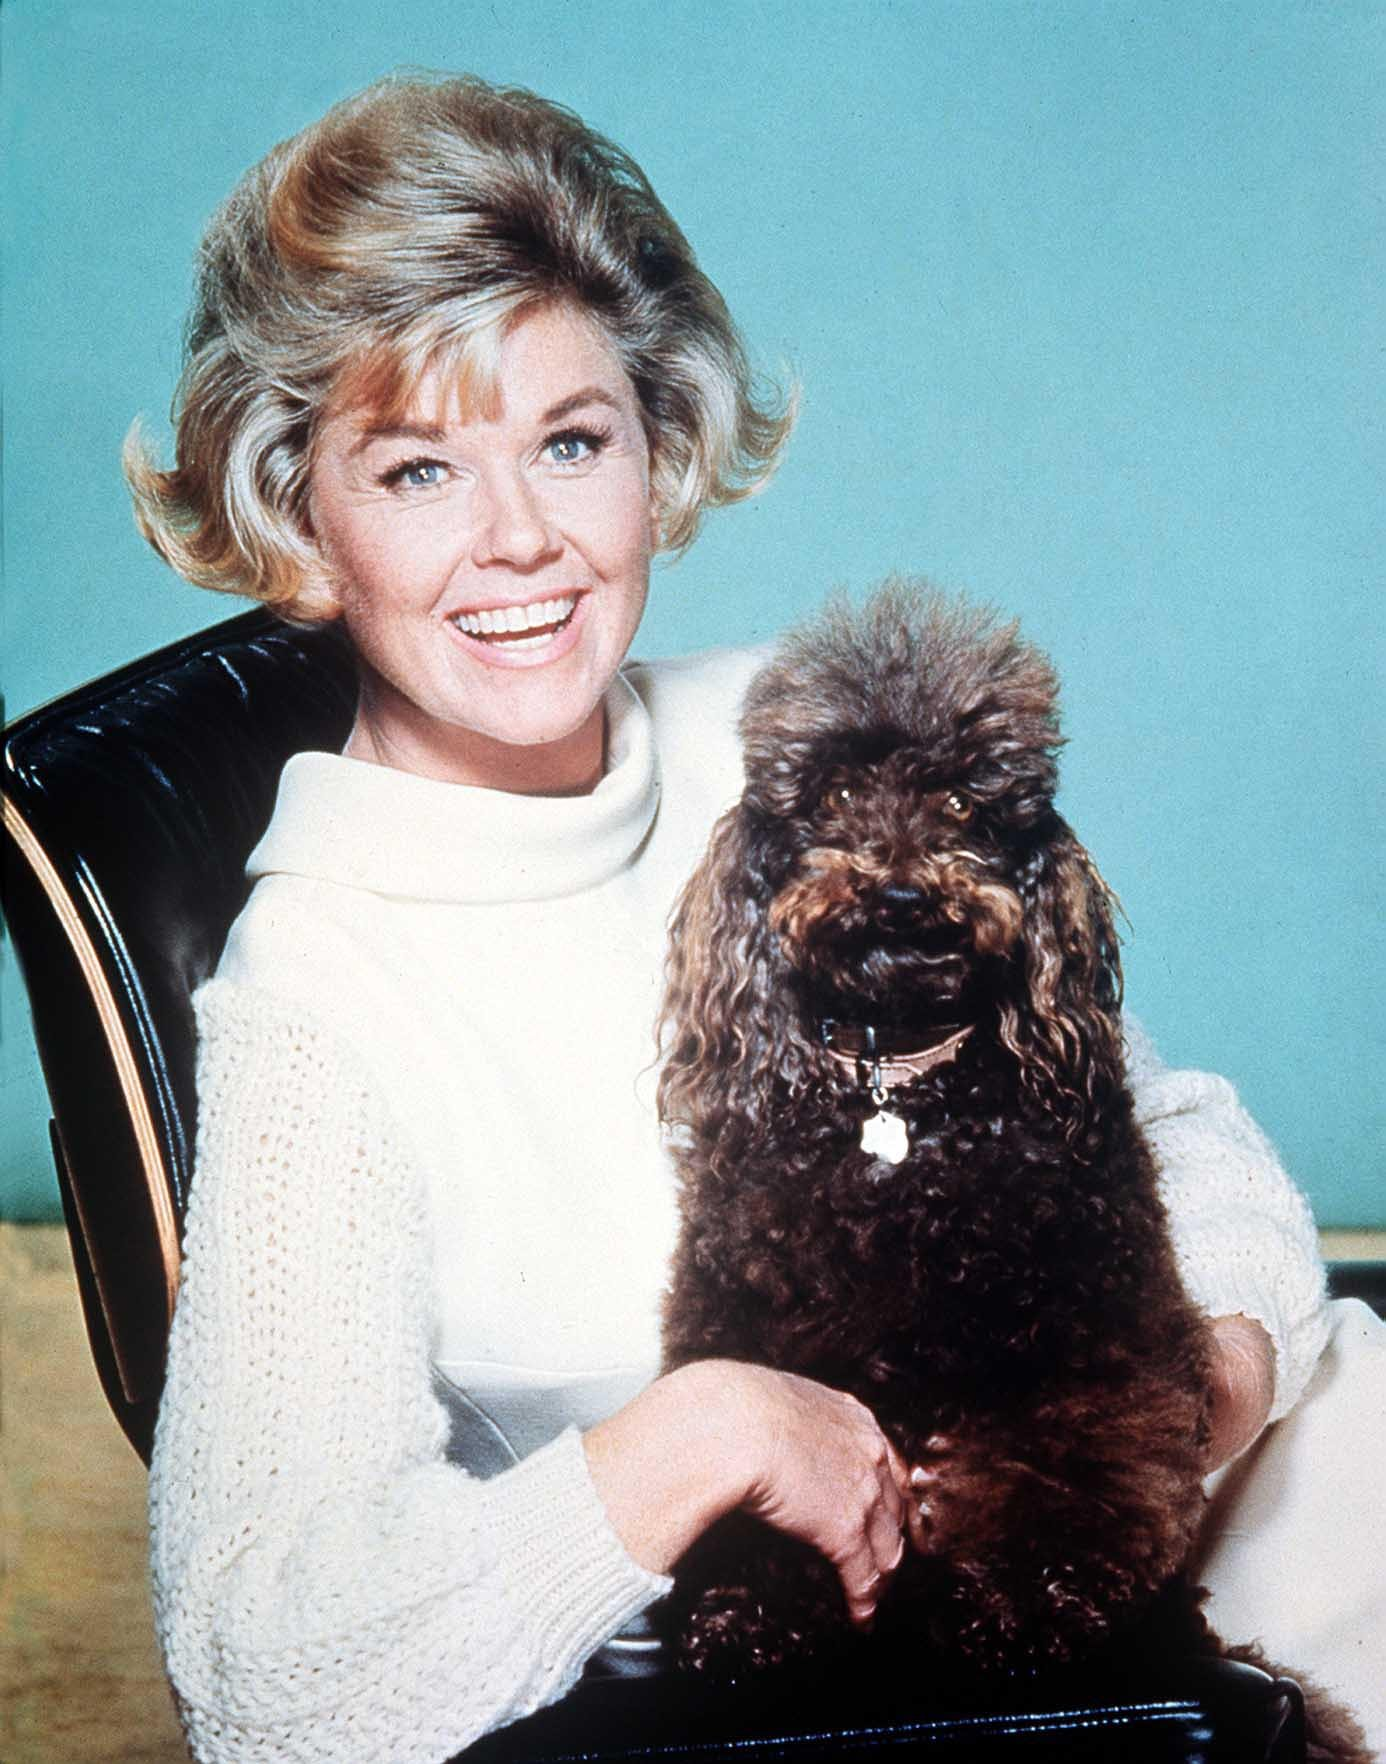 Doris Day und ihr Hund 1968 | Quelle: Getty Images